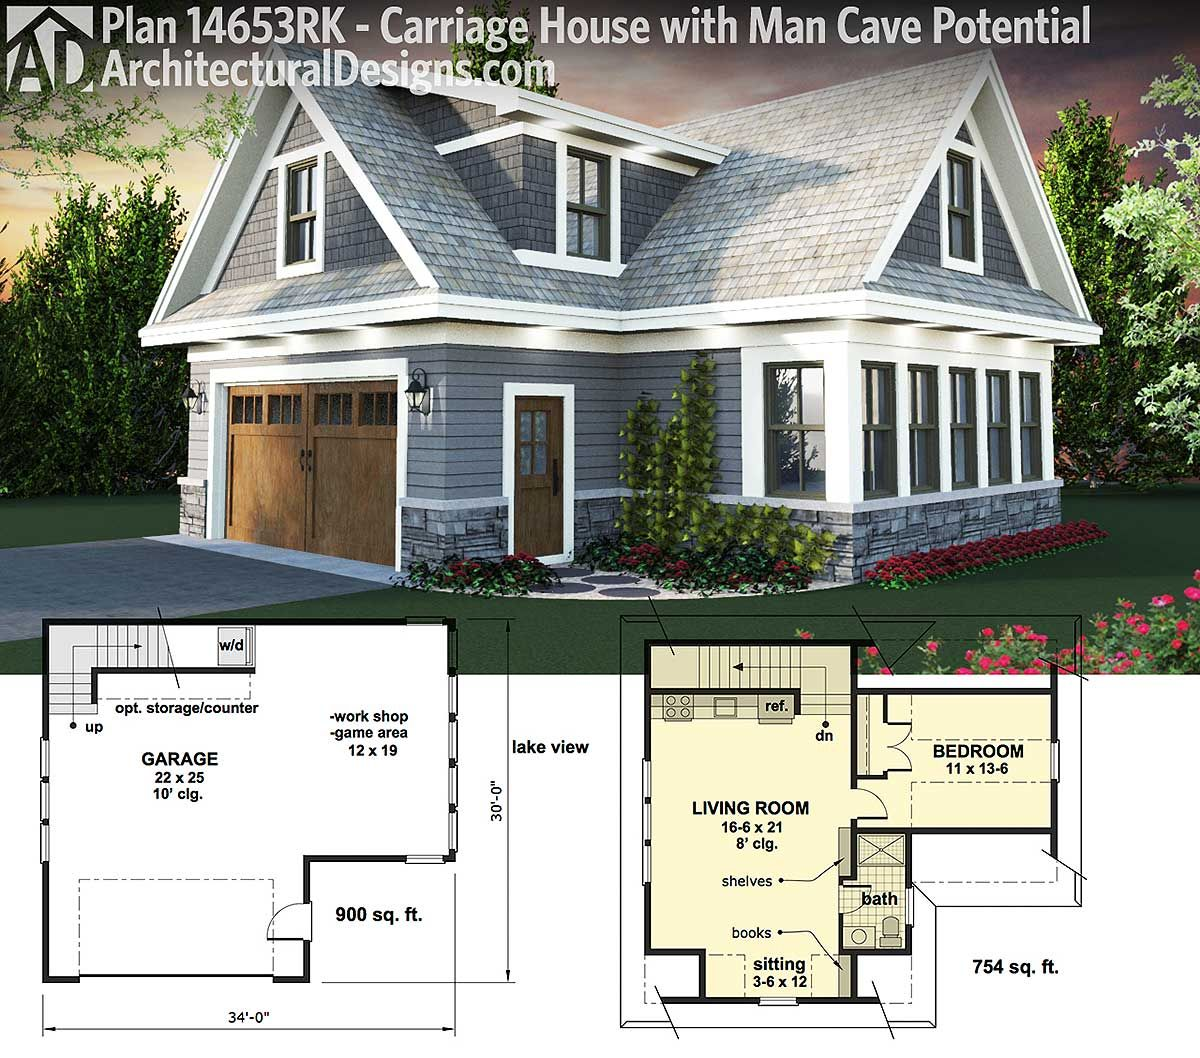 Plan 14653rk carriage house plan with man cave potential for Carraige house plans